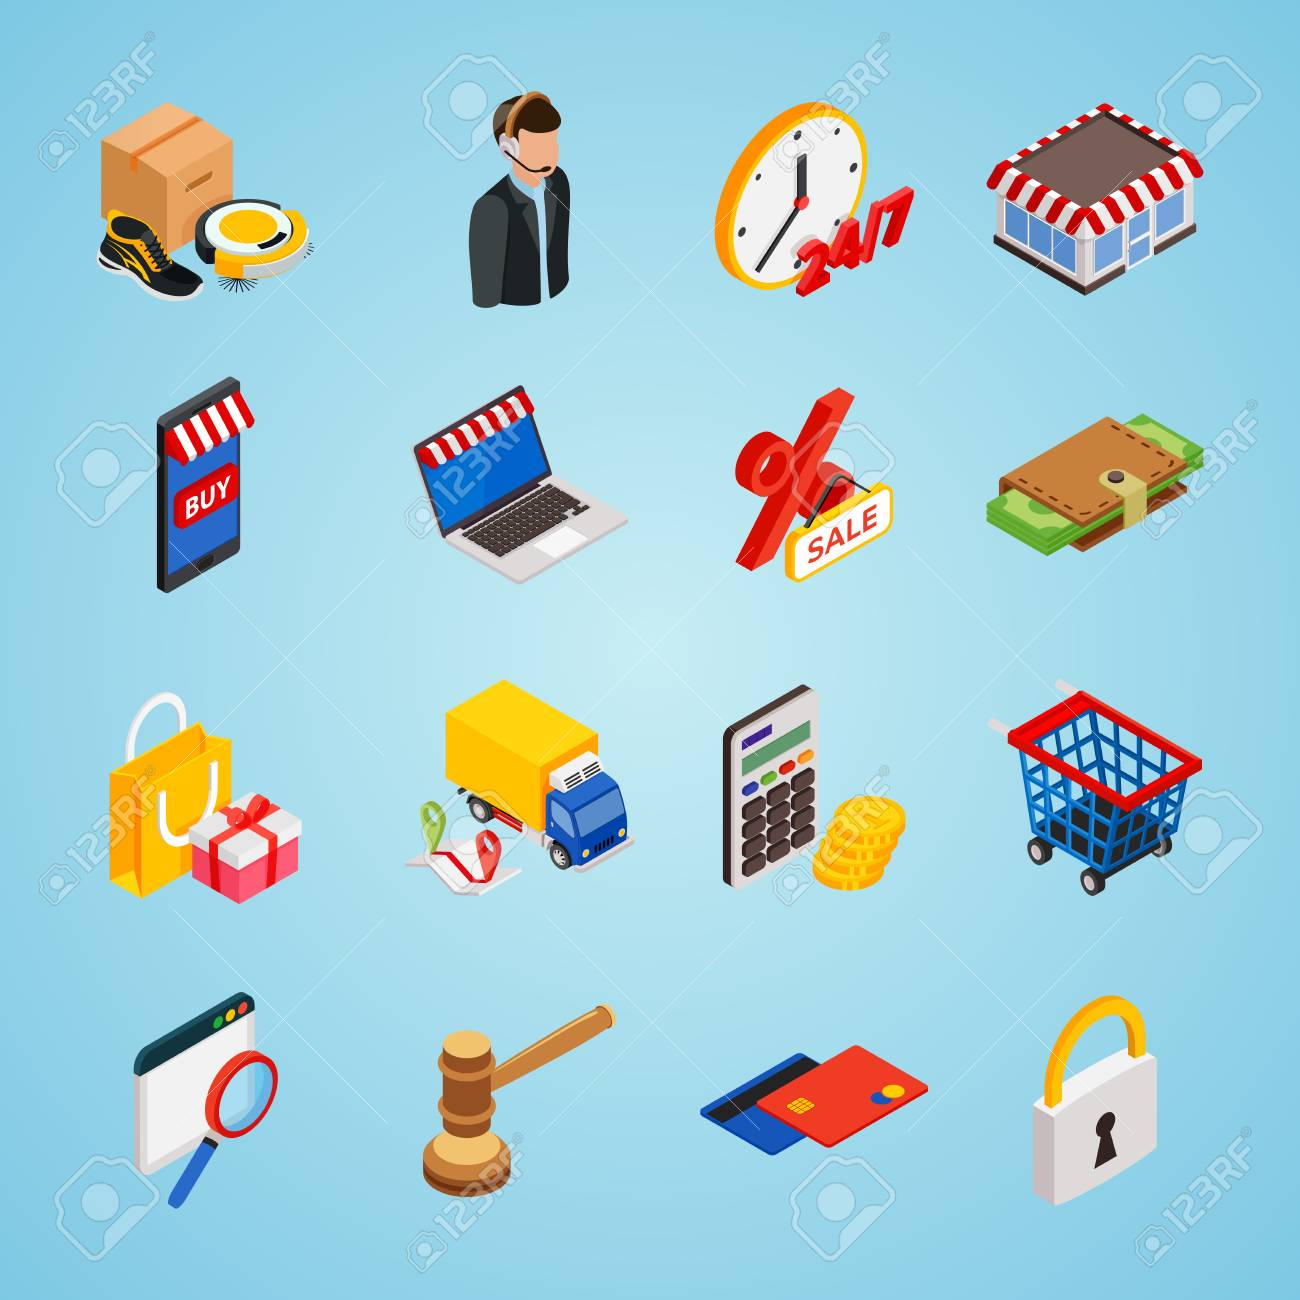 Electronic Commerce Isometric Icon Set With Gadgets For Buying